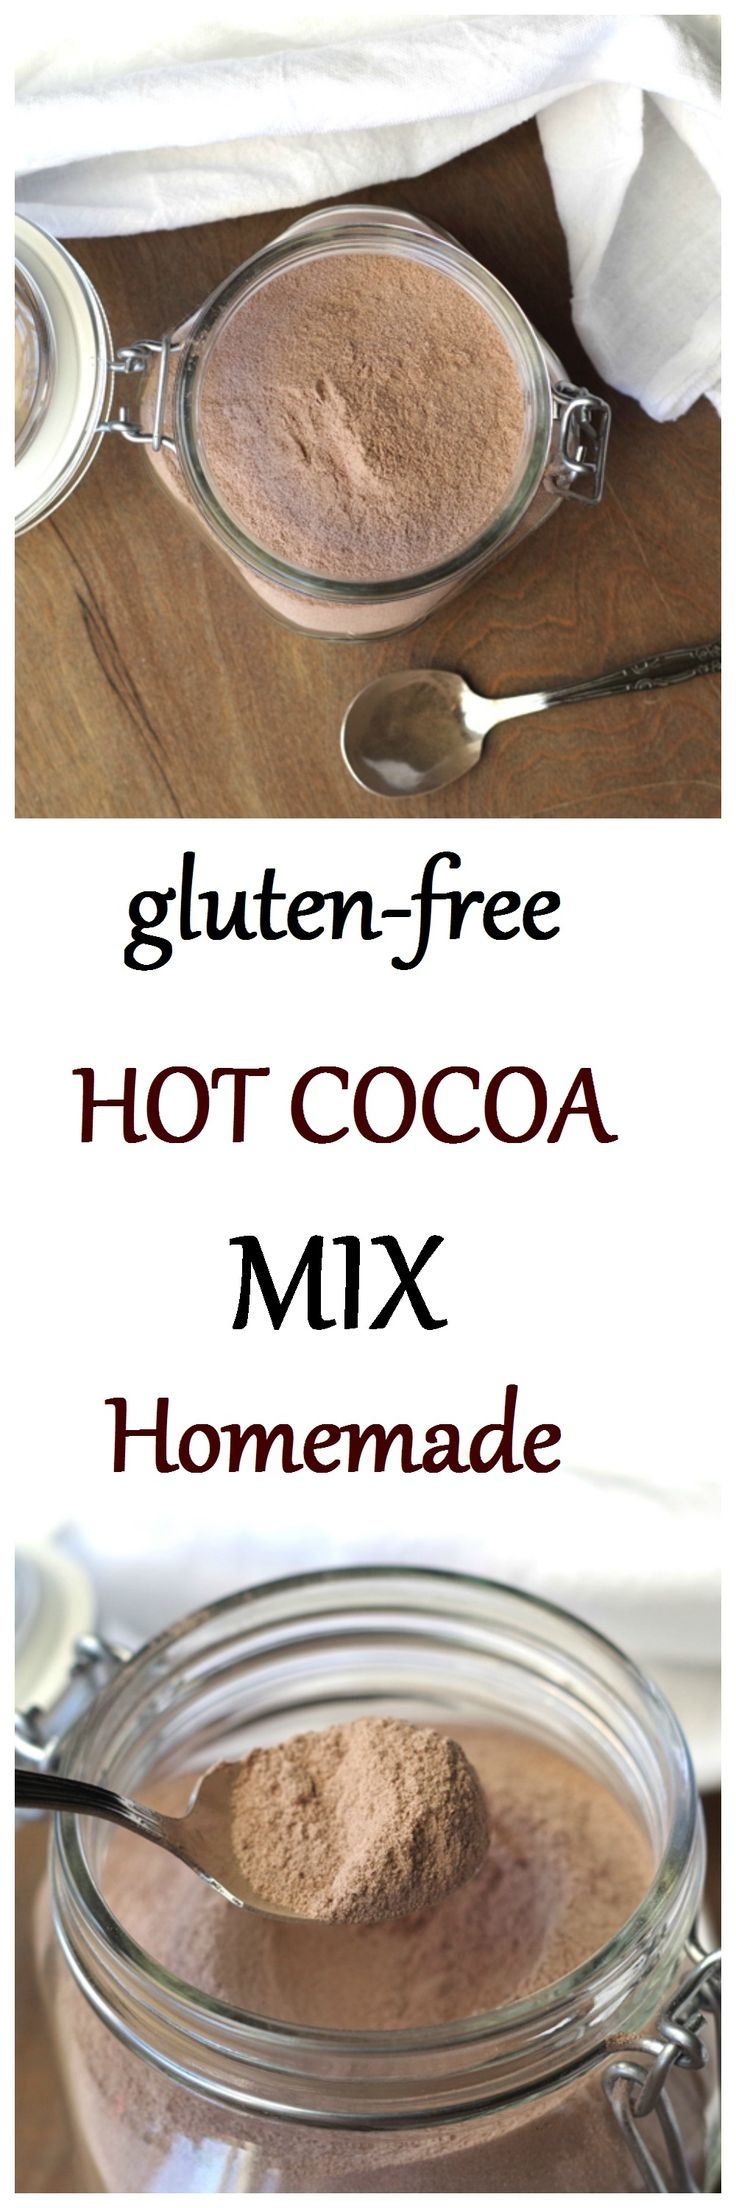 This simple gluten-free hot cocoa mix will be a new staple in your house.